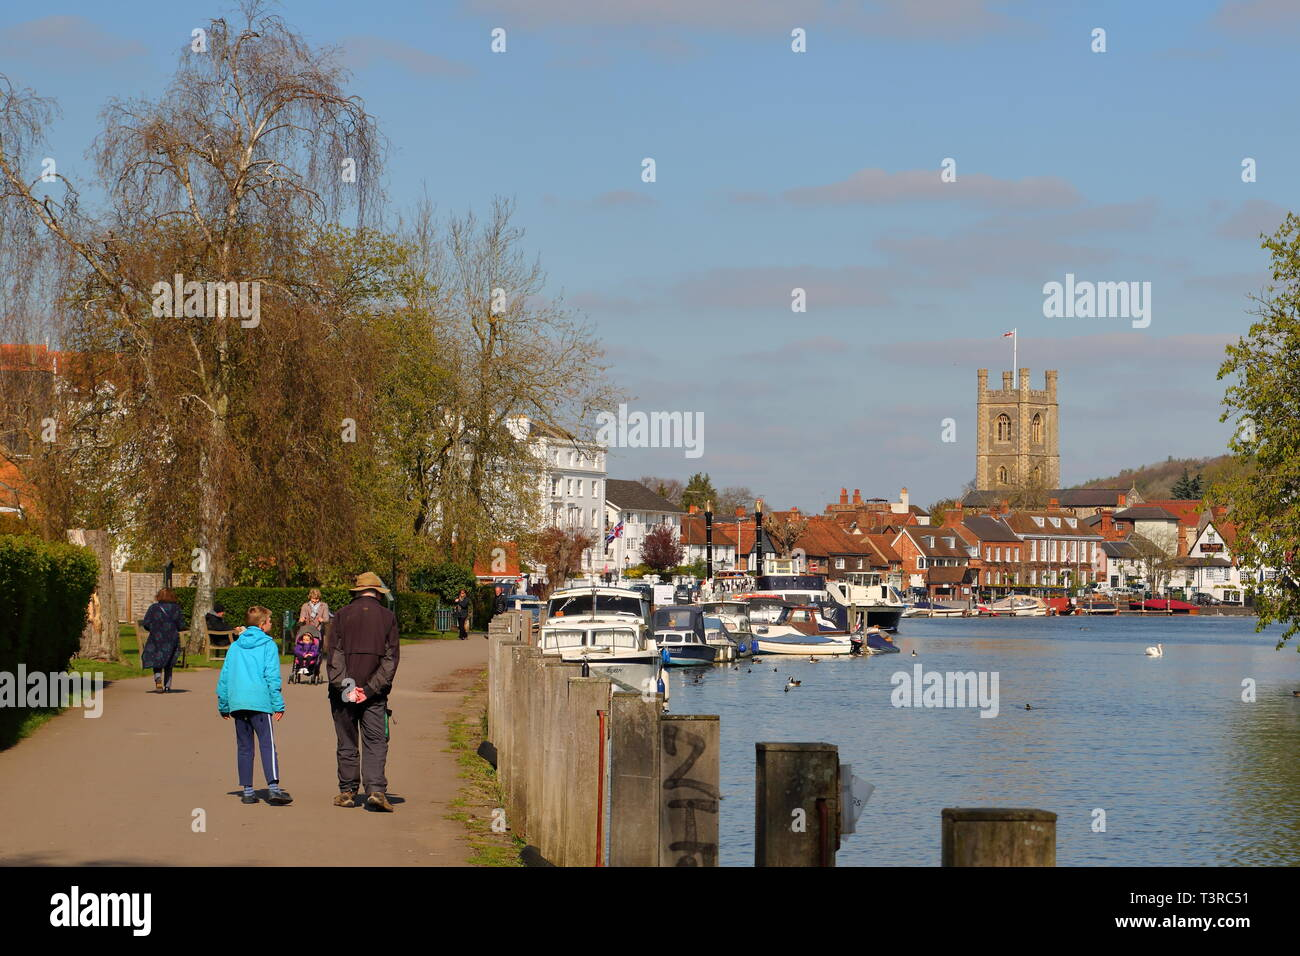 Walkers strolling along the river Thames towpath at Henley-on-Thames, UK - Stock Image